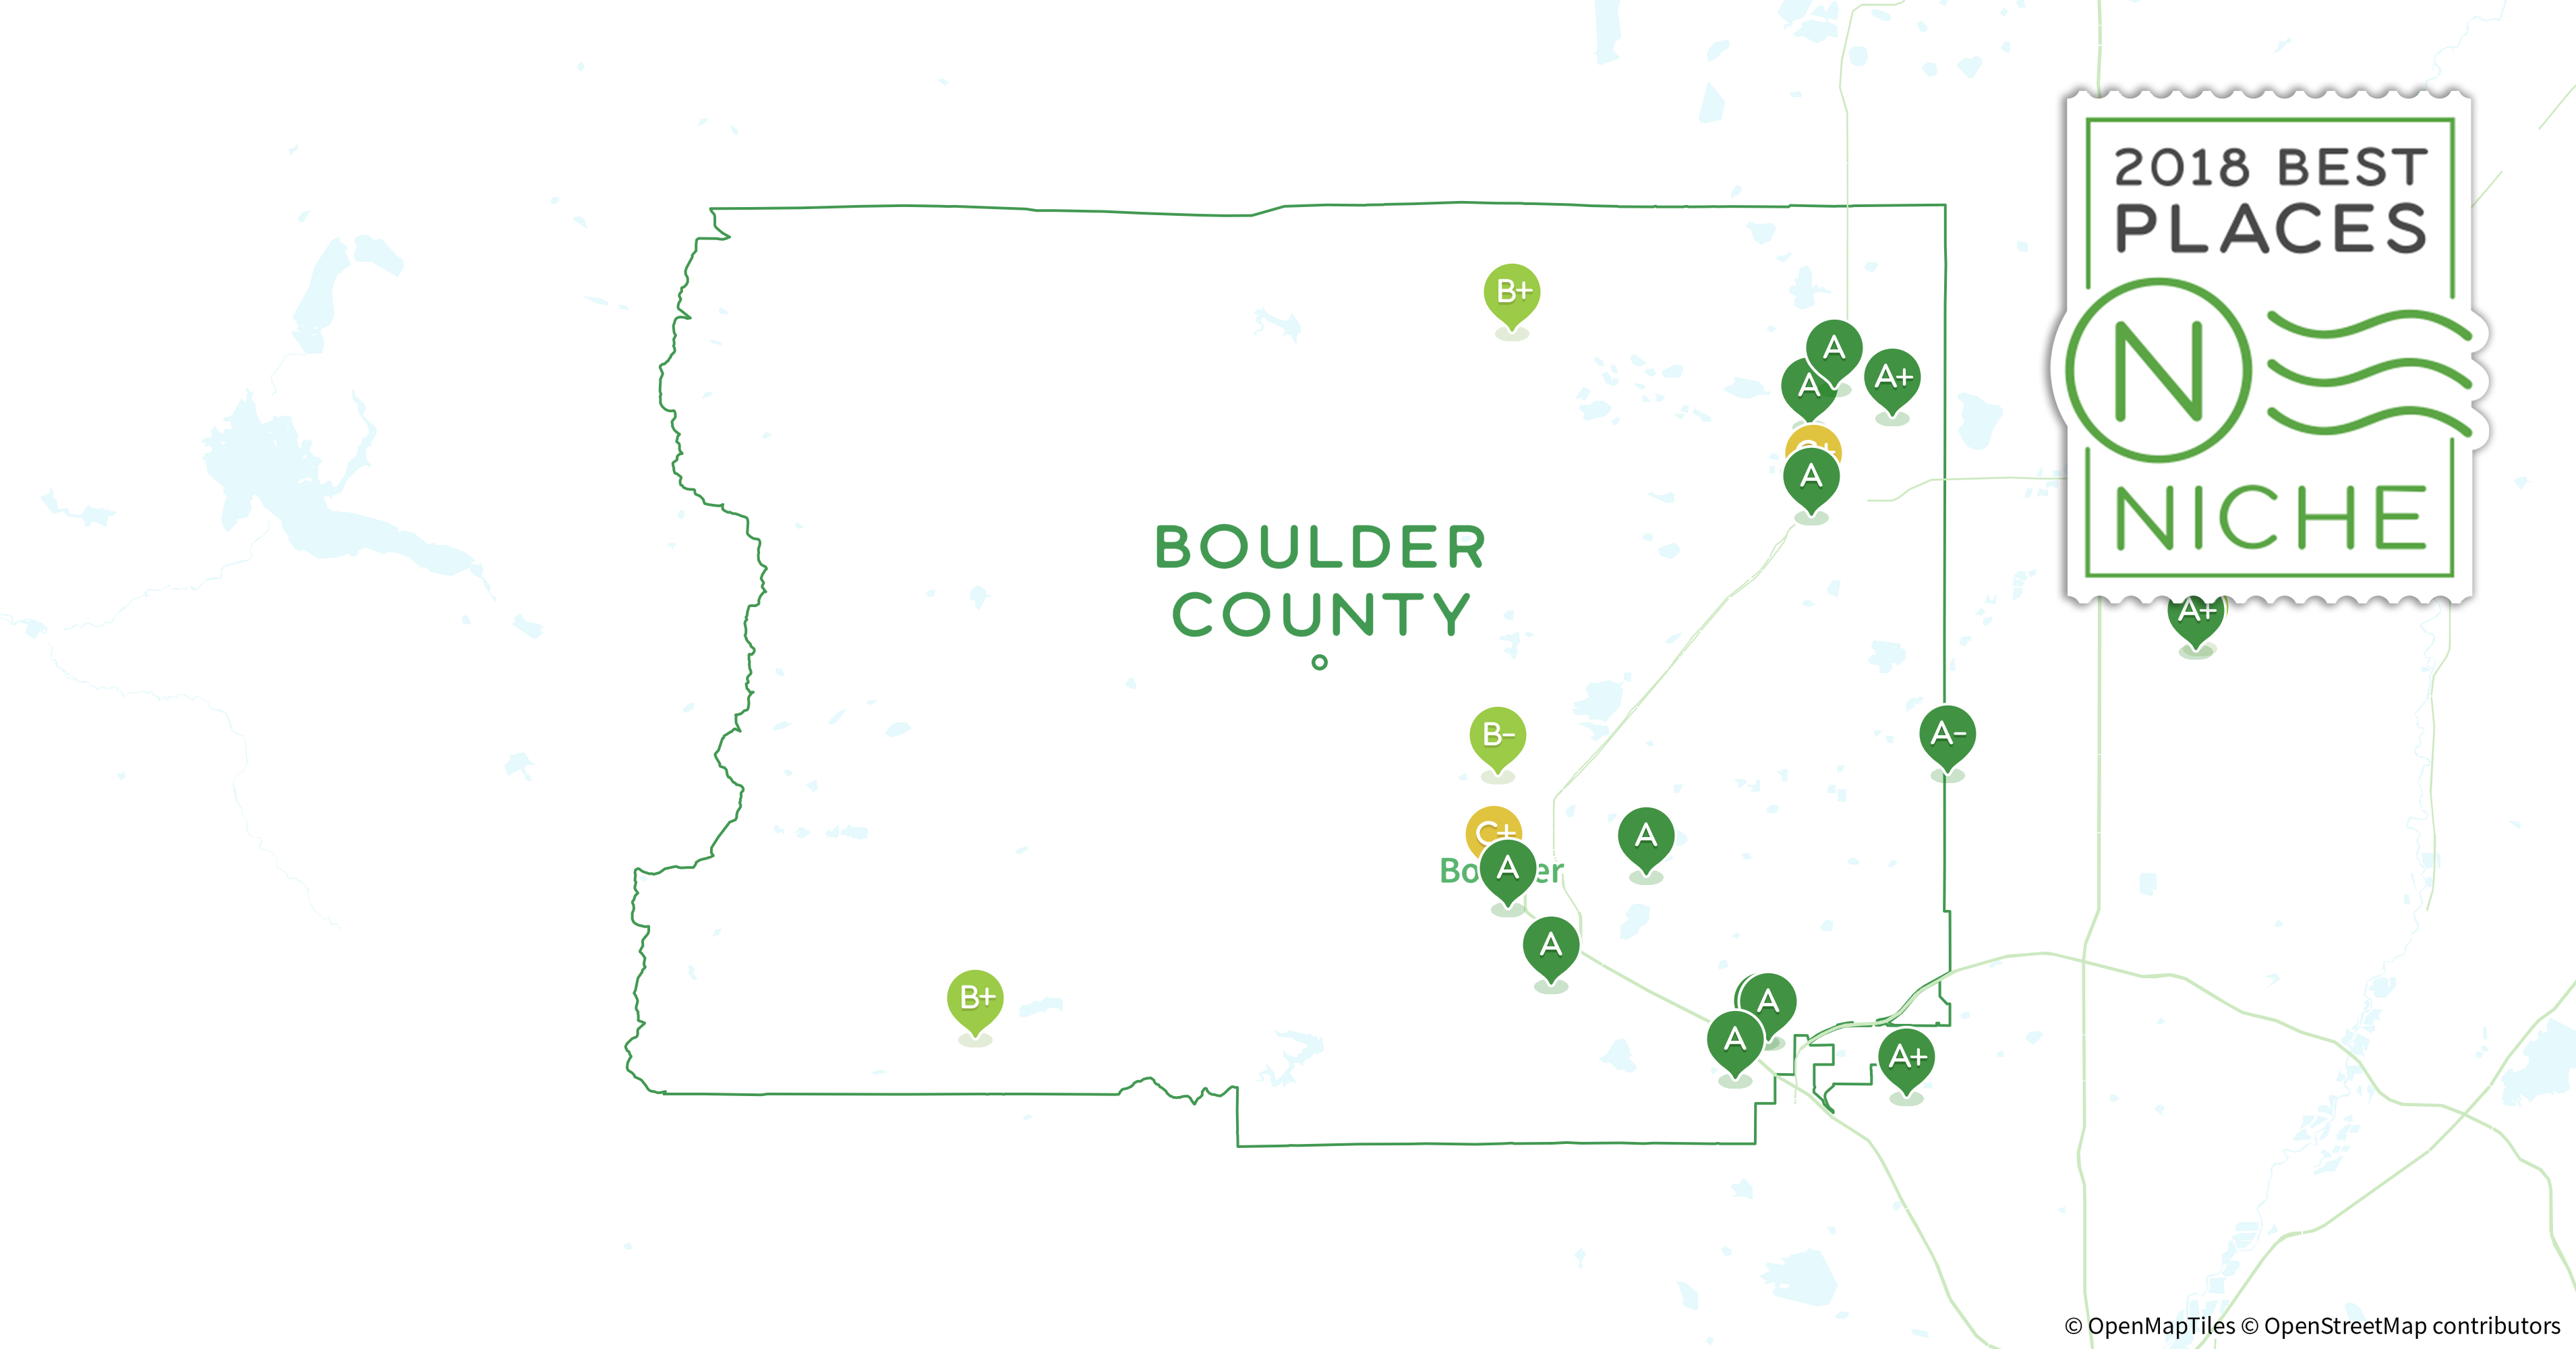 2018 best places to live in boulder county co niche